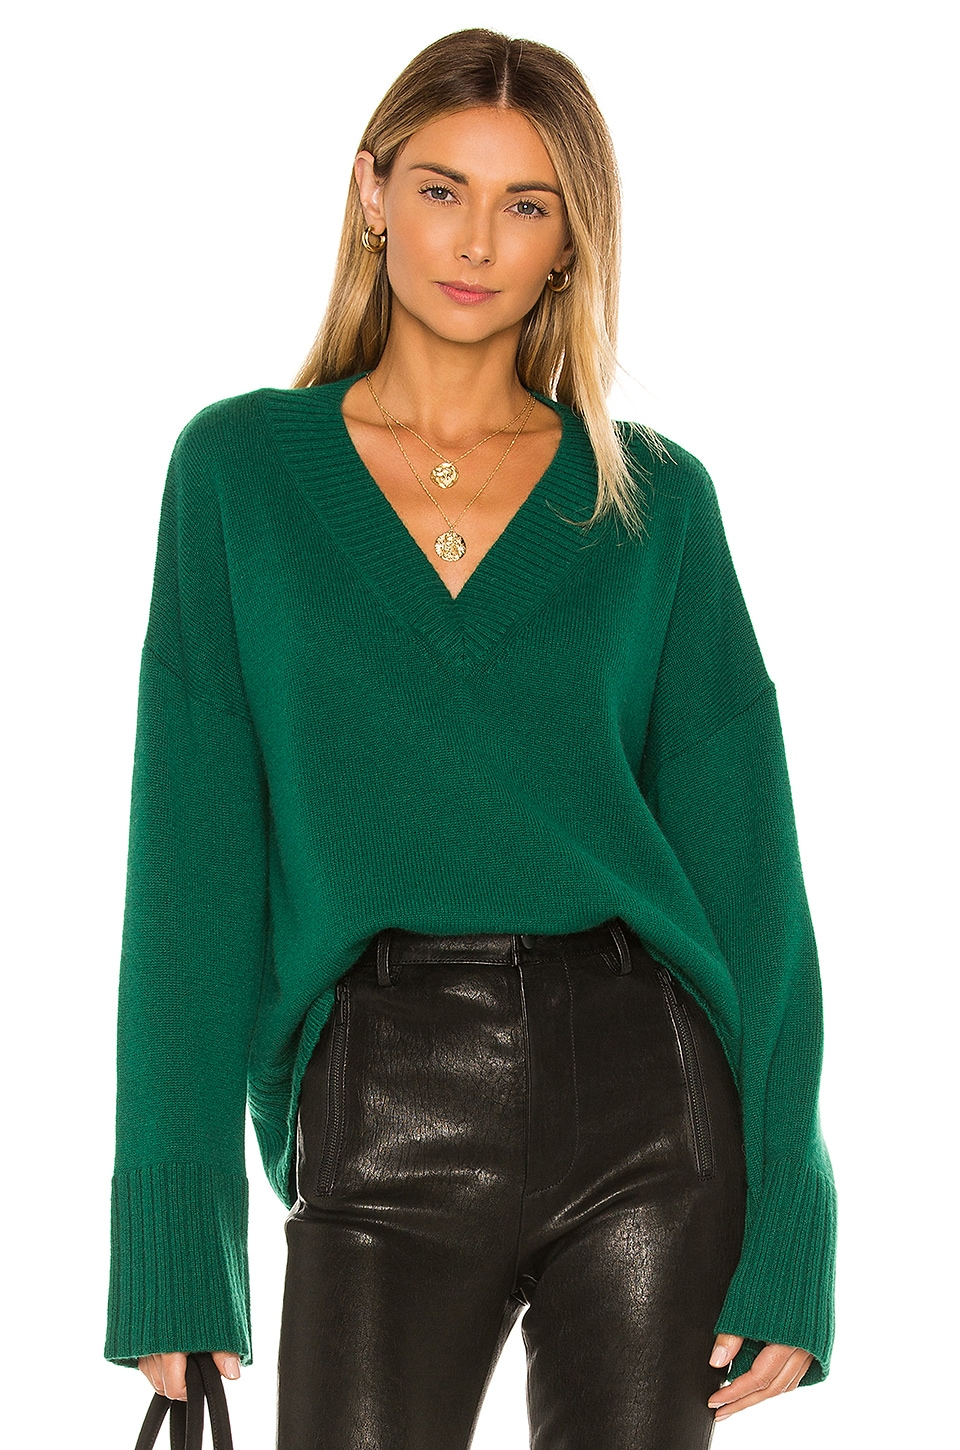 Autumn Cashmere Boxy Wide Sleeve Sweater in Astroturf